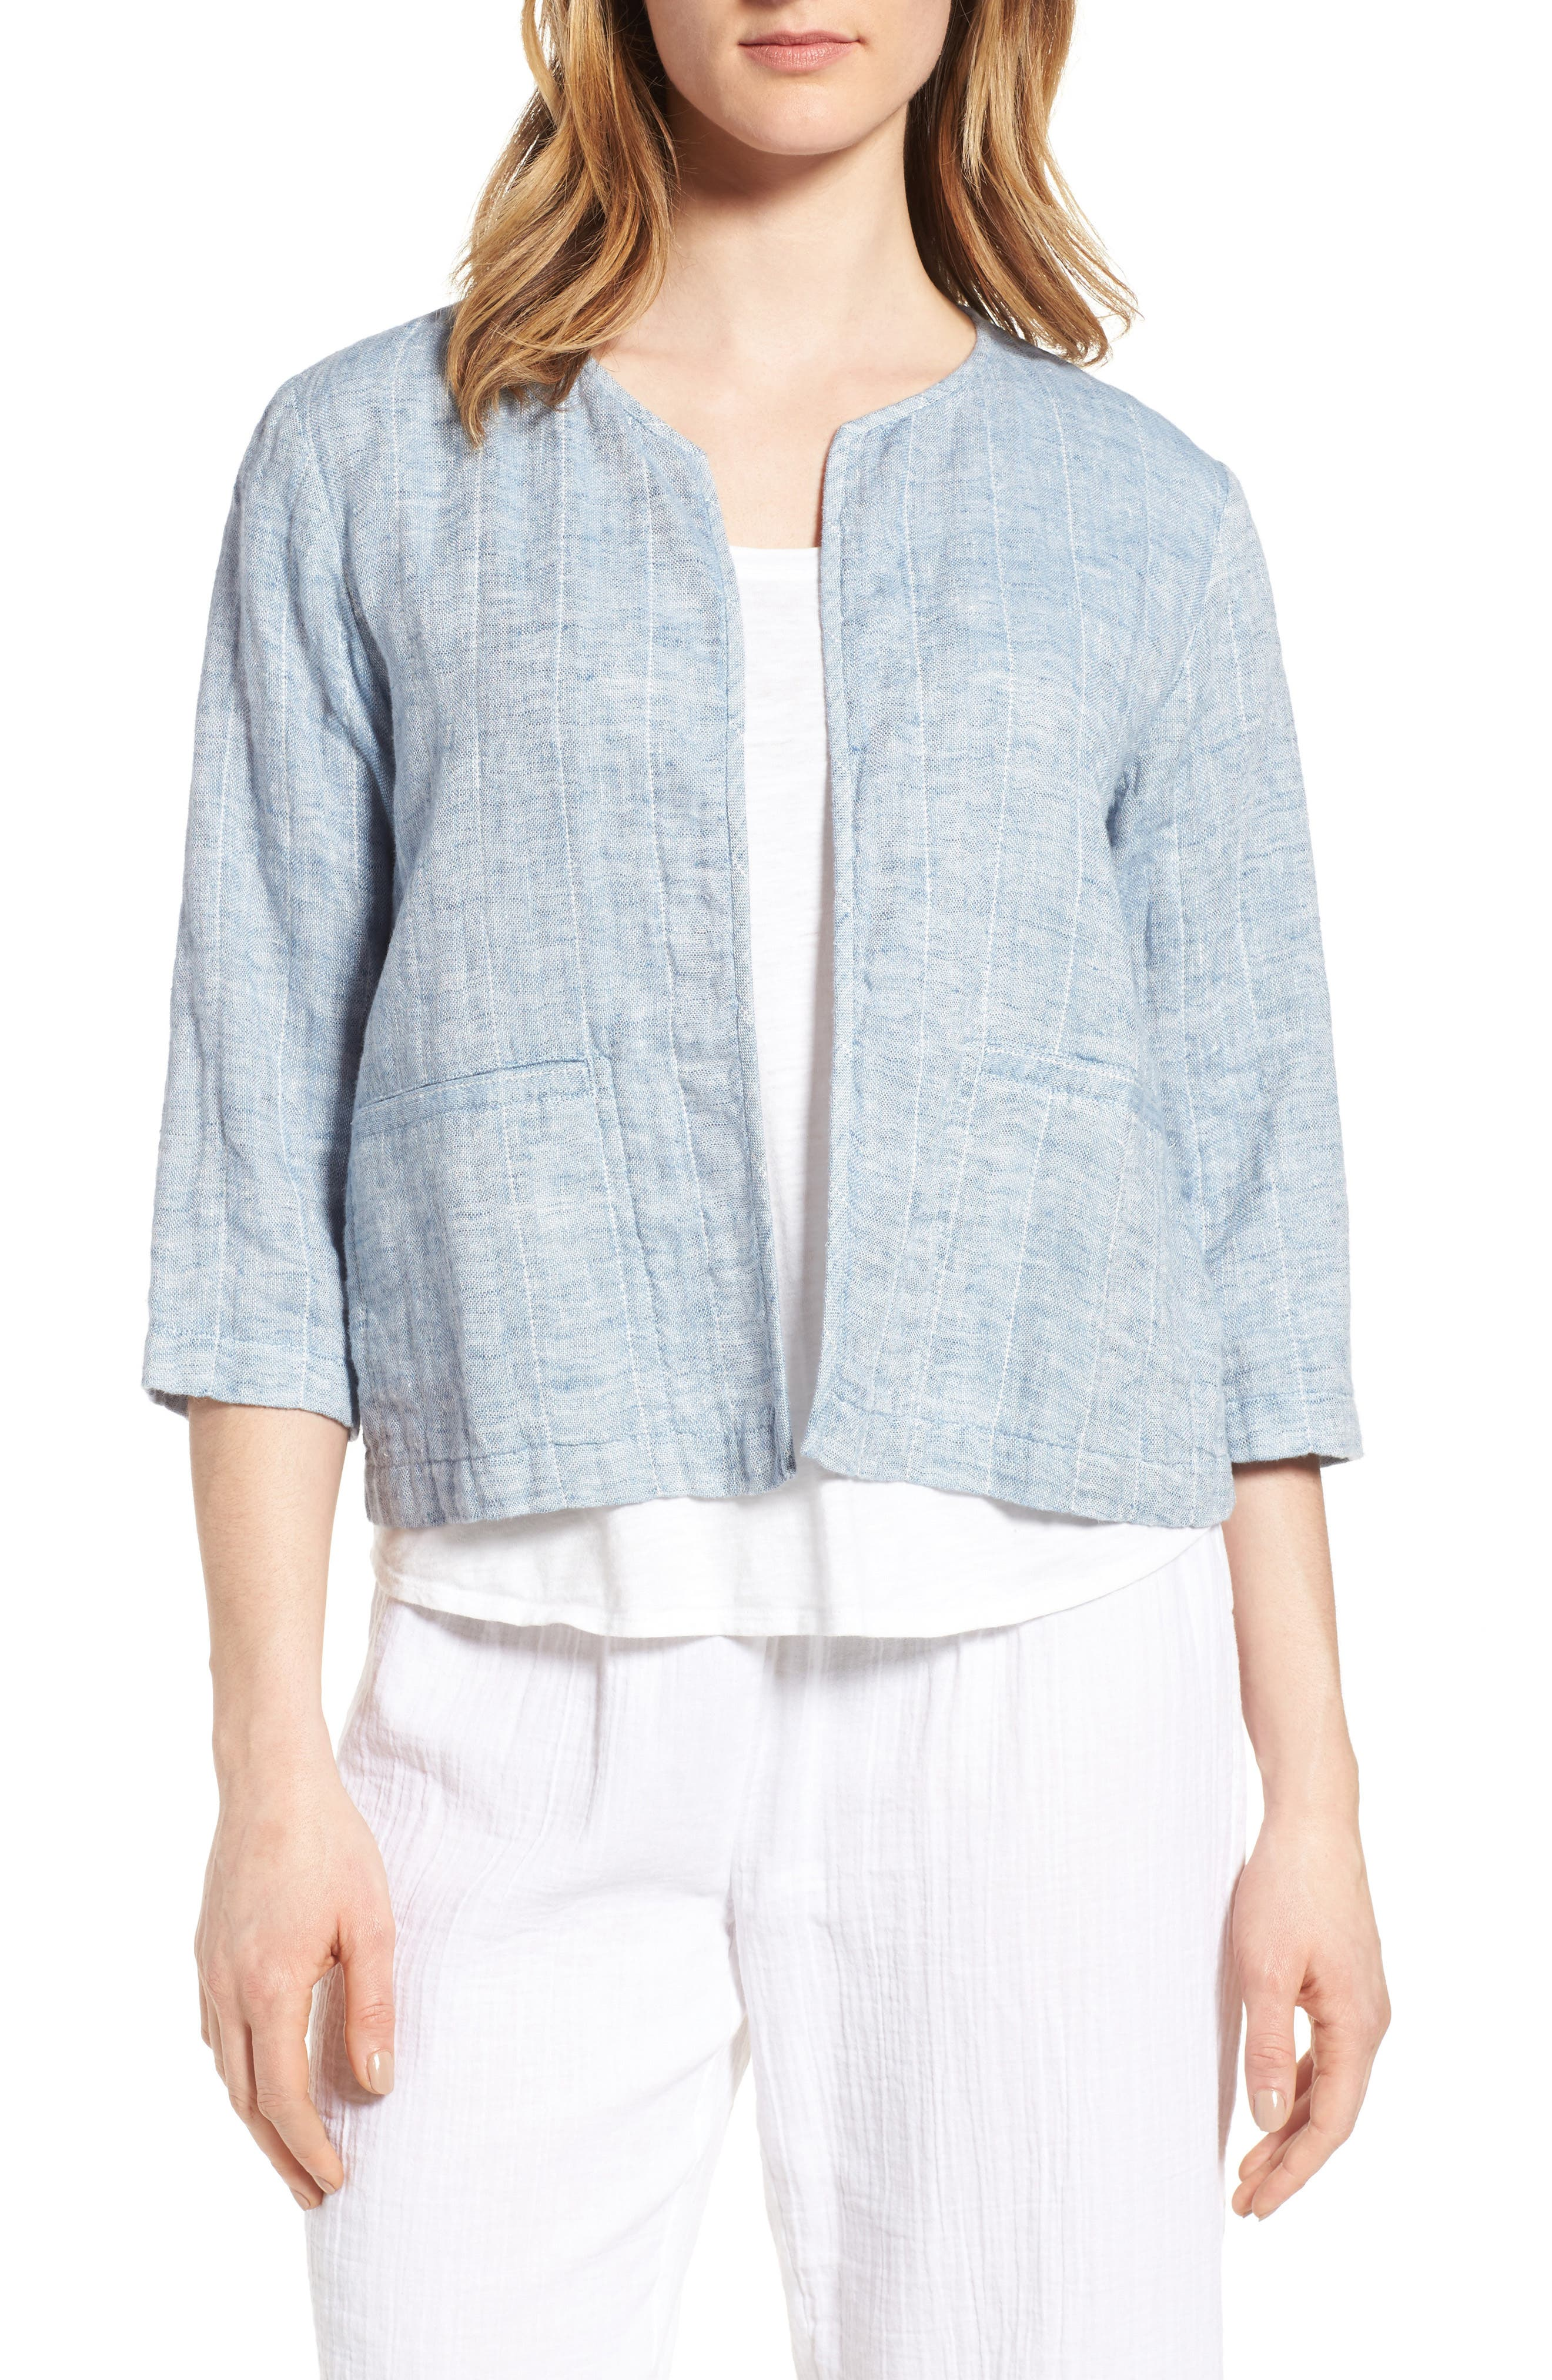 Alternate Image 1 Selected - Eileen Fisher Organic Cotton & Linen Crop Jacket (Regular & Petite)